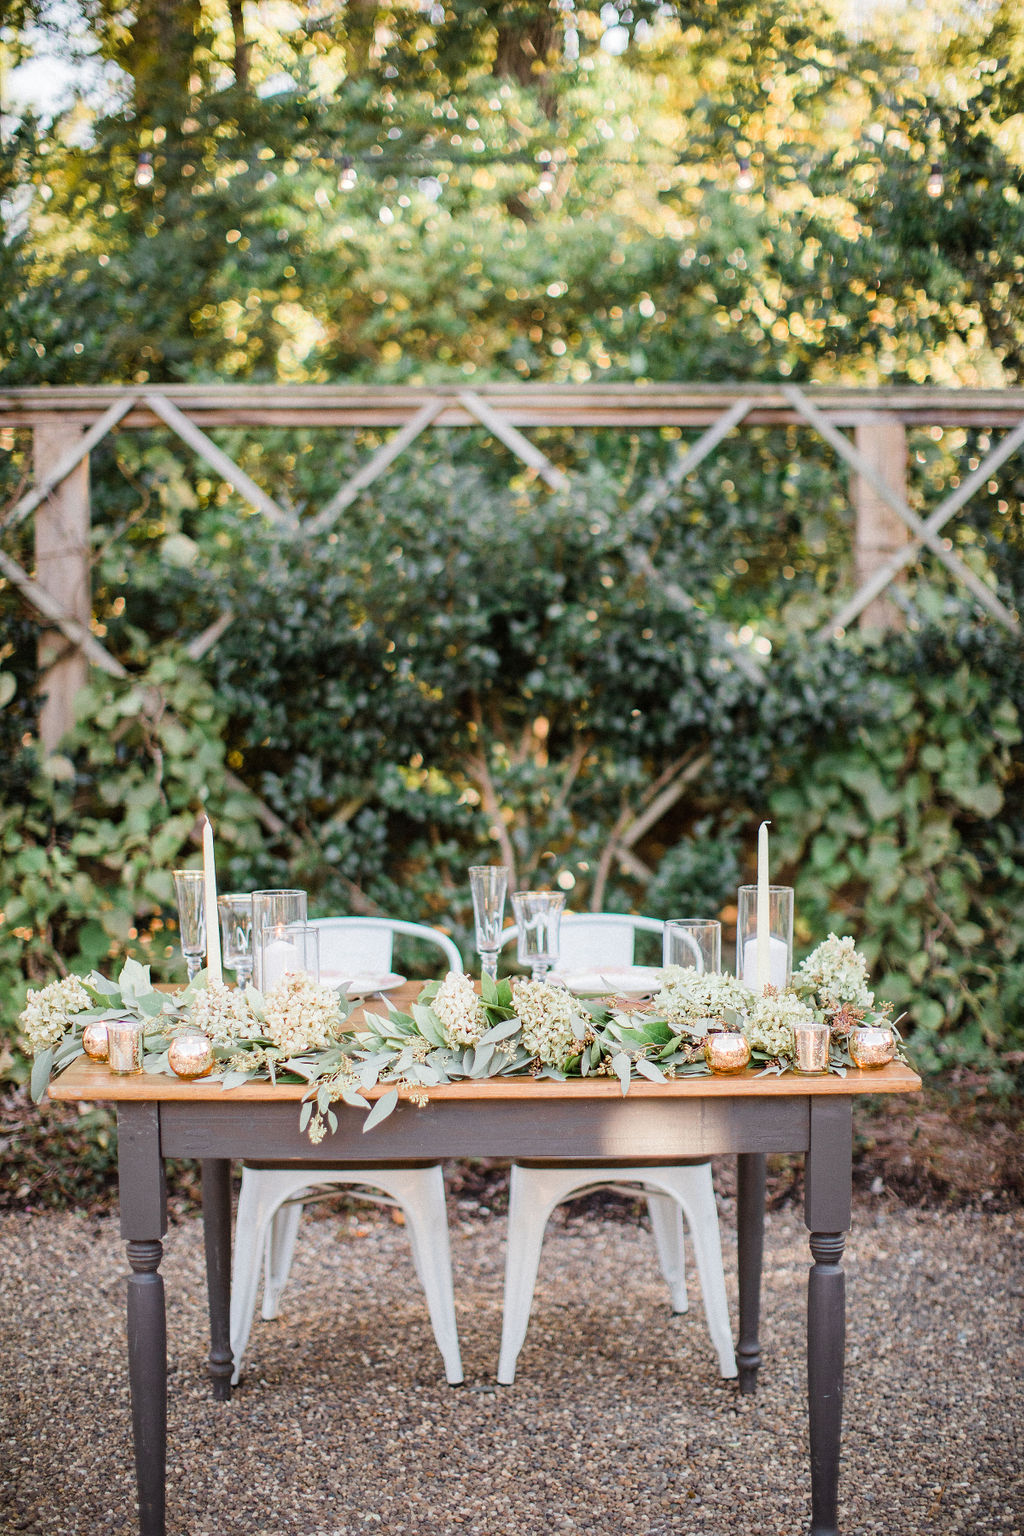 Rustic and Vintage Sweetheart Table